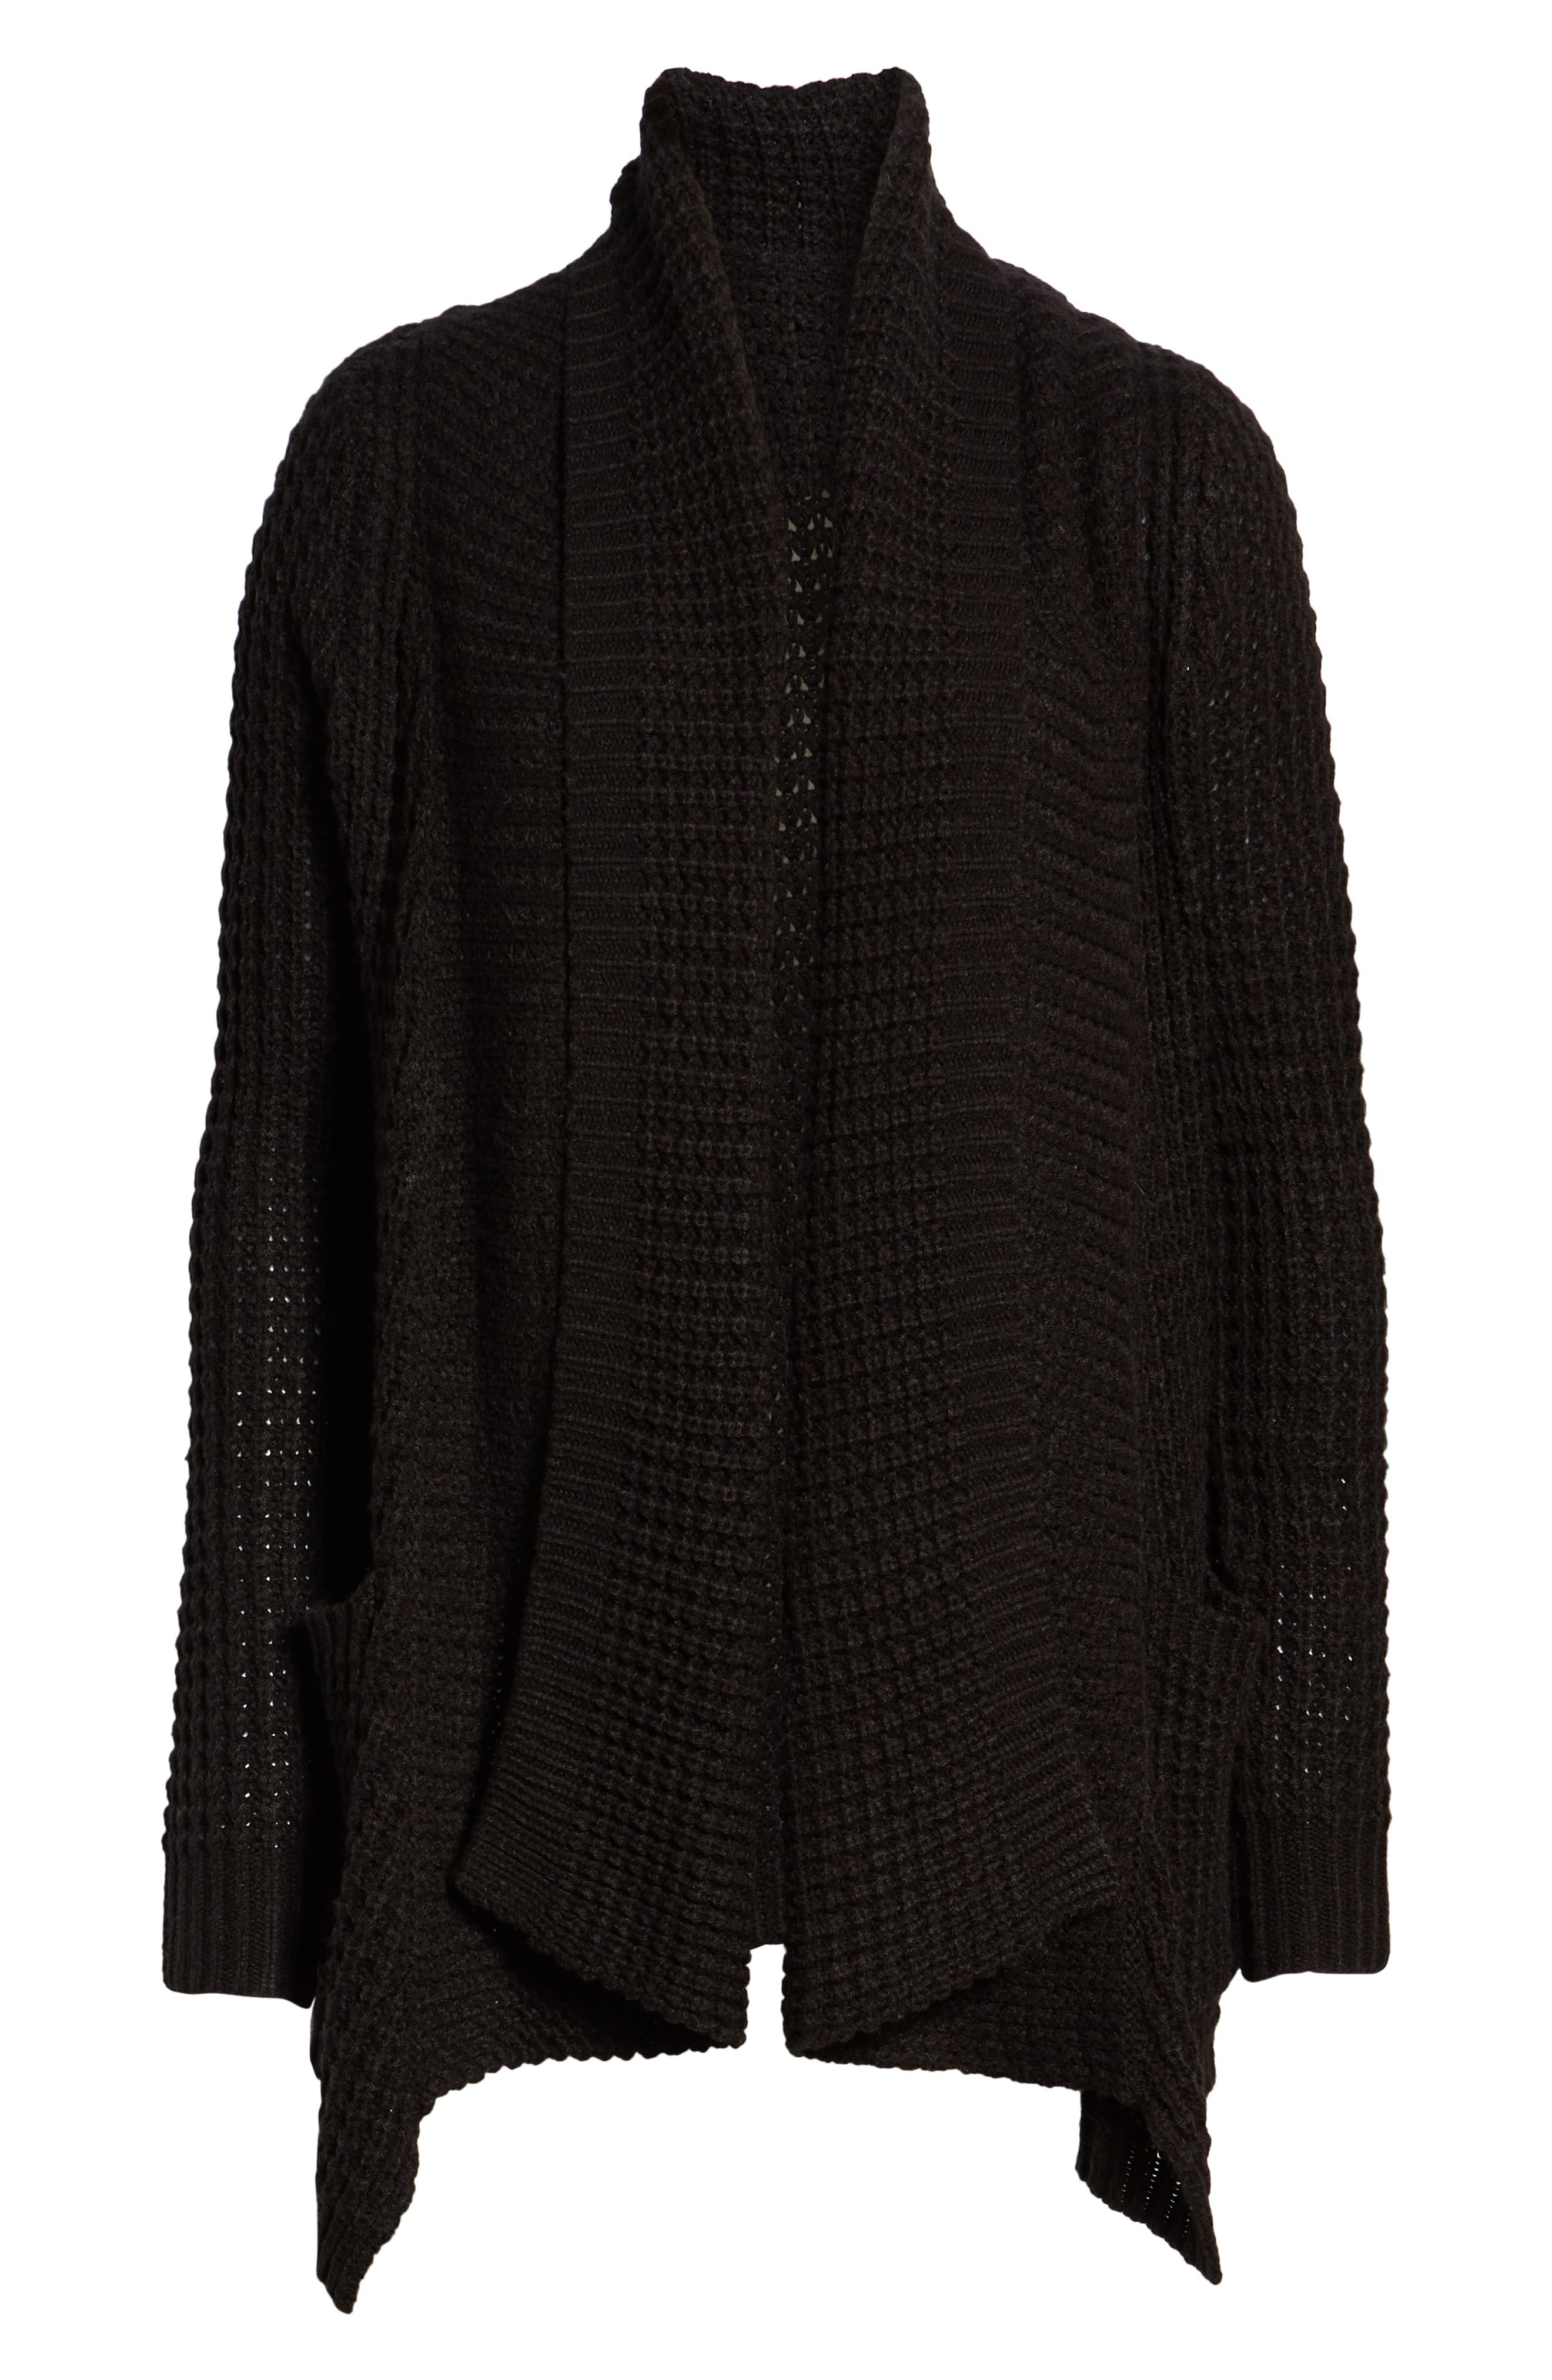 Shambala Knit Cardigan,                             Alternate thumbnail 6, color,                             BLACK